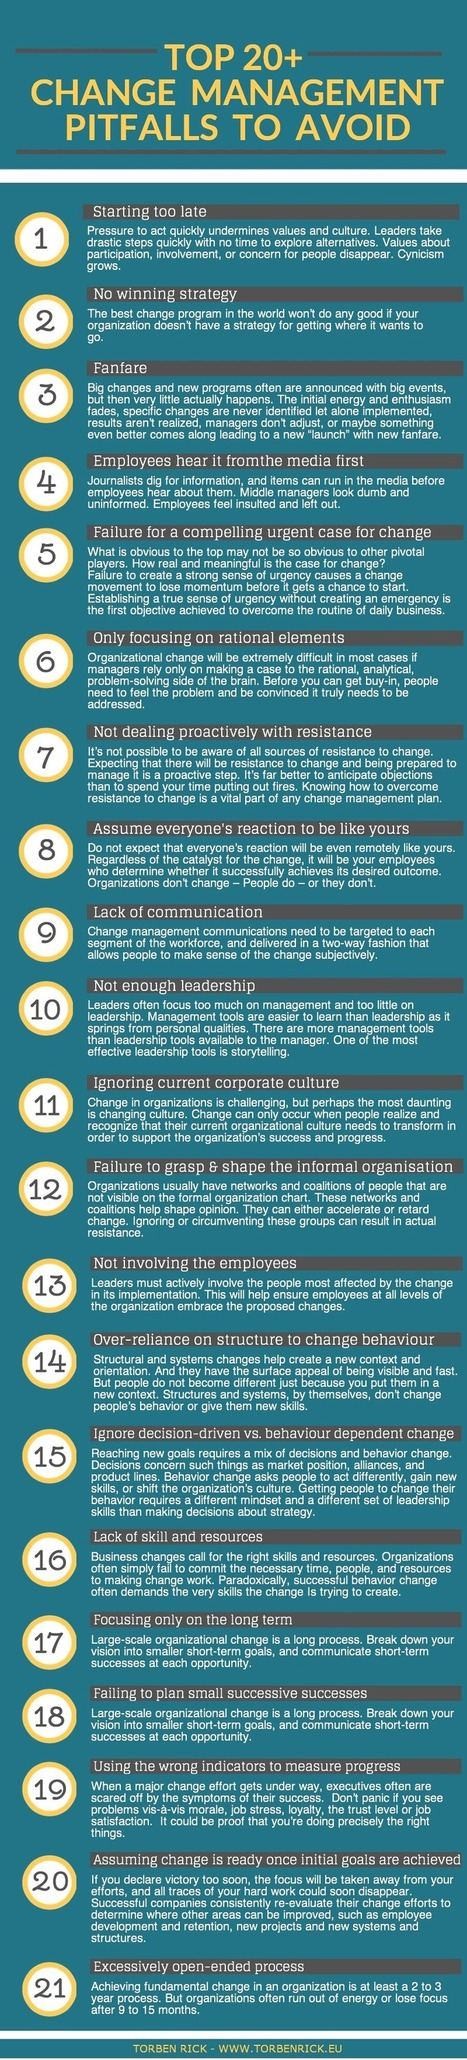 Infographic: Top 20+ organizational change management pitfalls   Systems Thinking in Management   Scoop.it